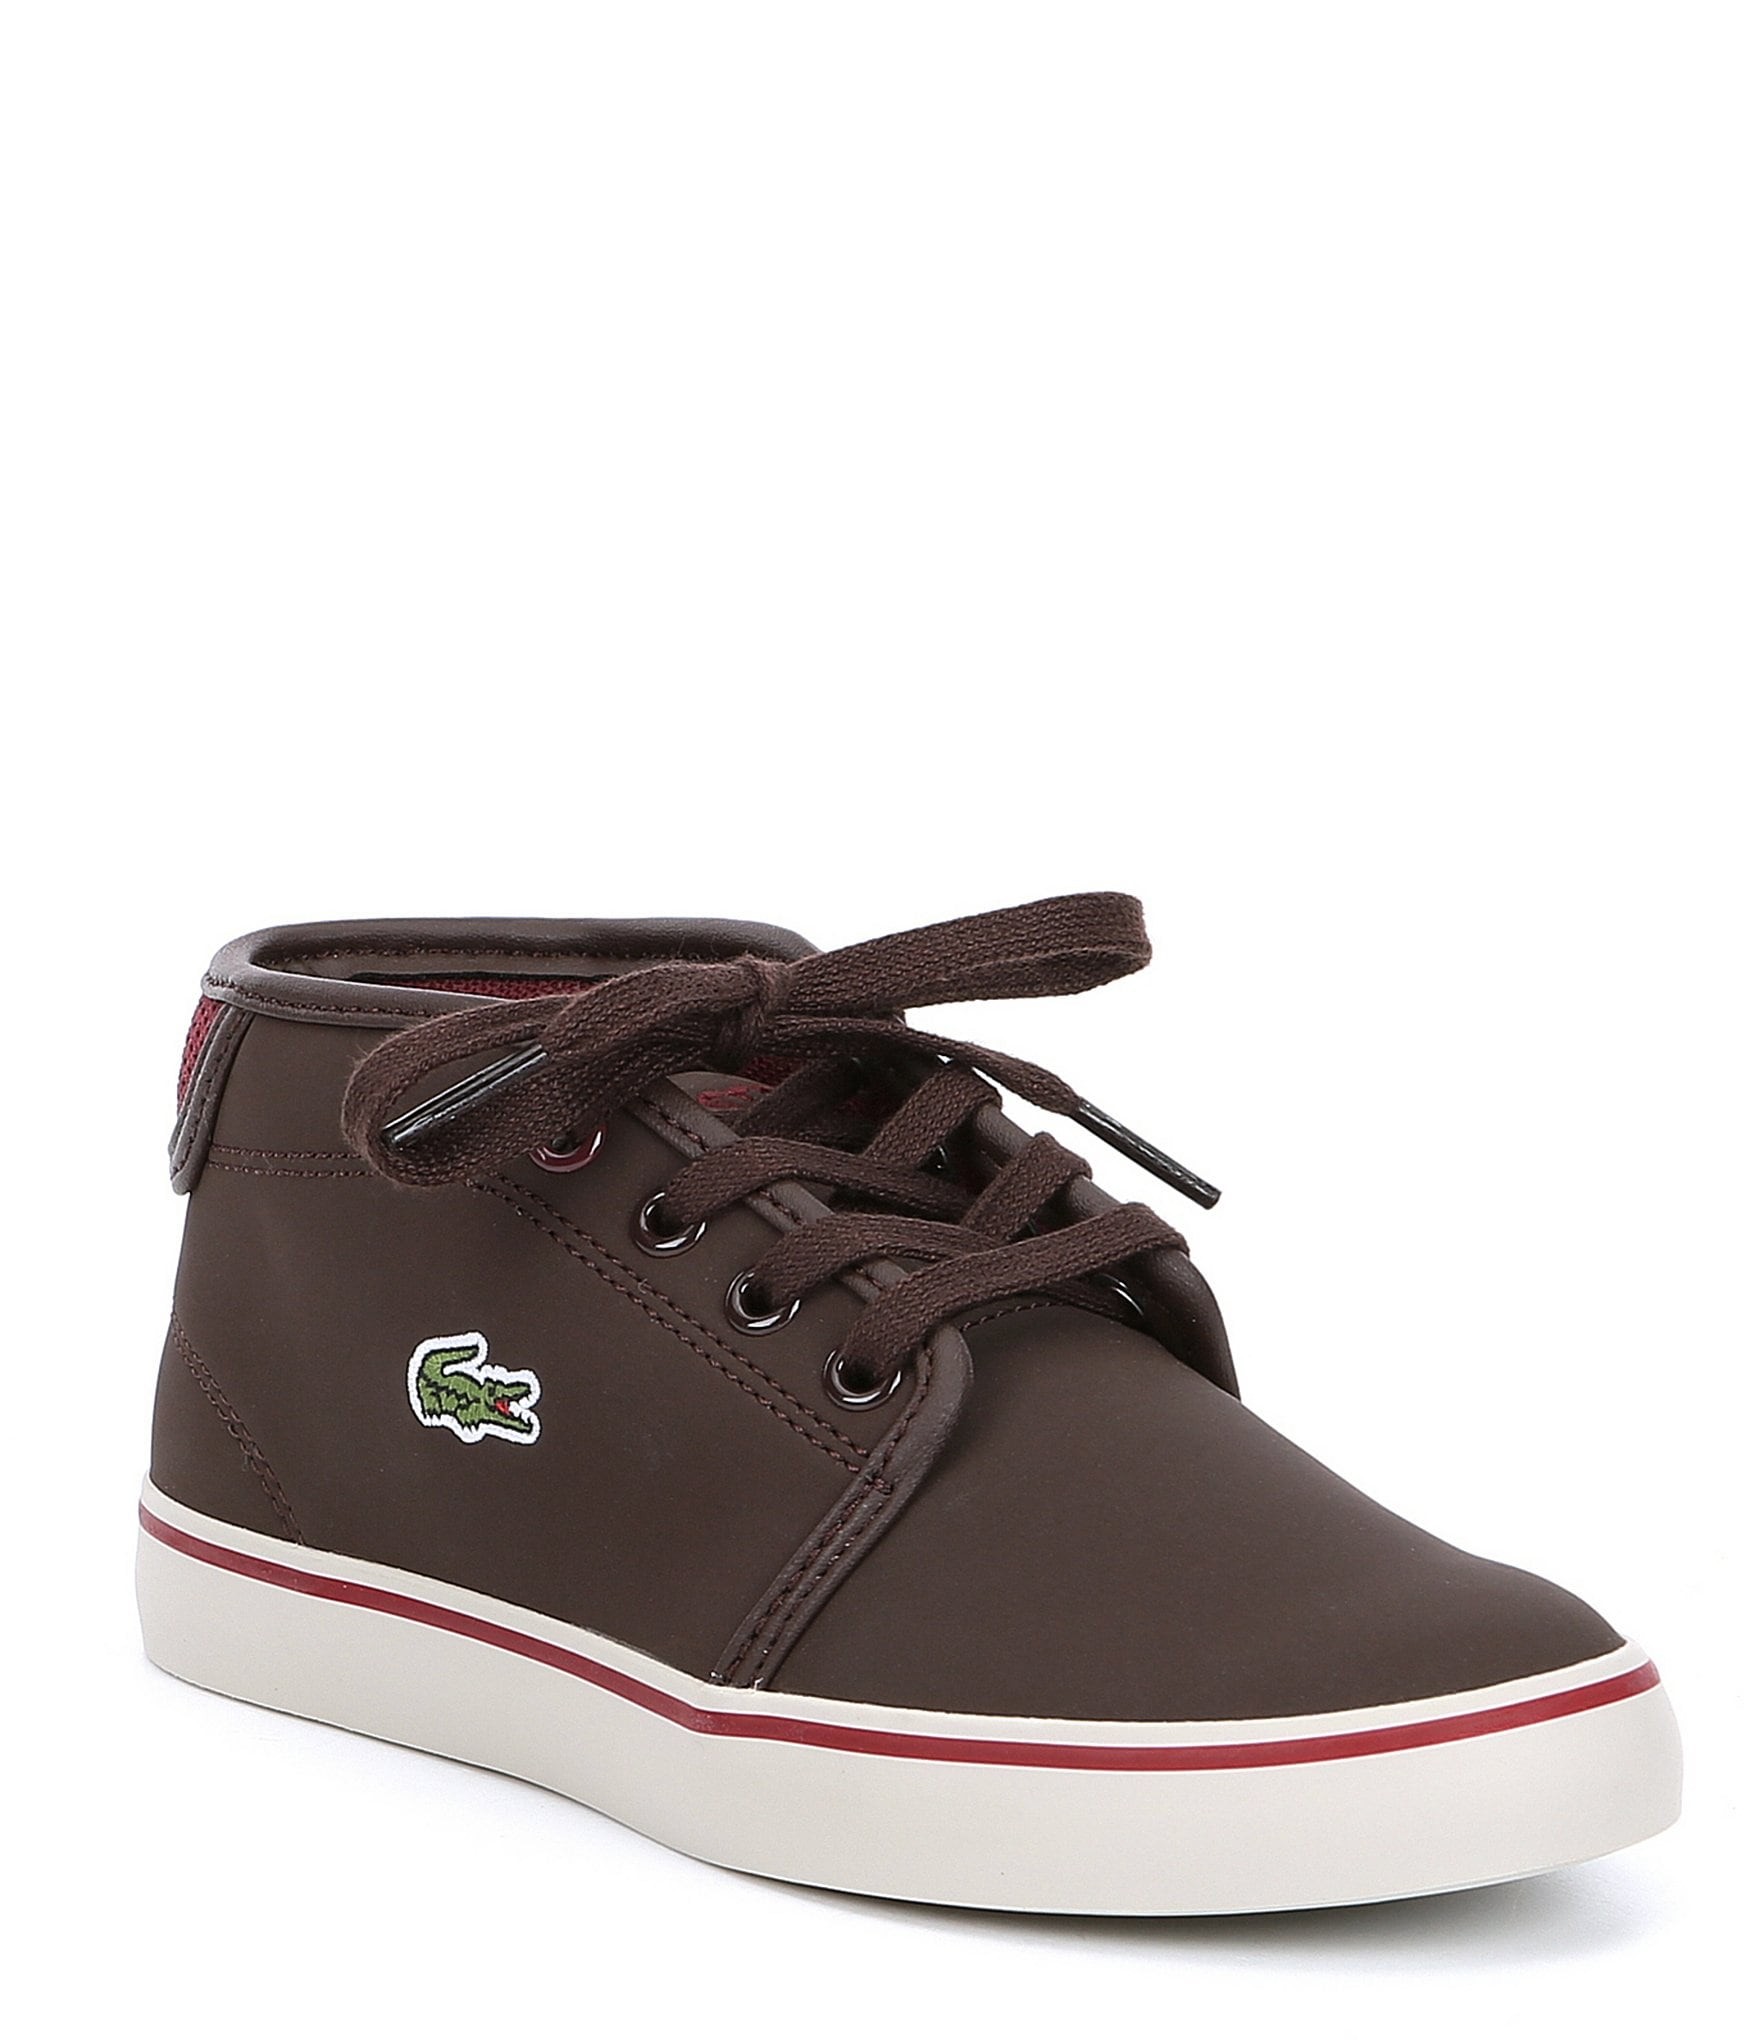 Lacoste Boys' Ampthill Mid Top Sneakers